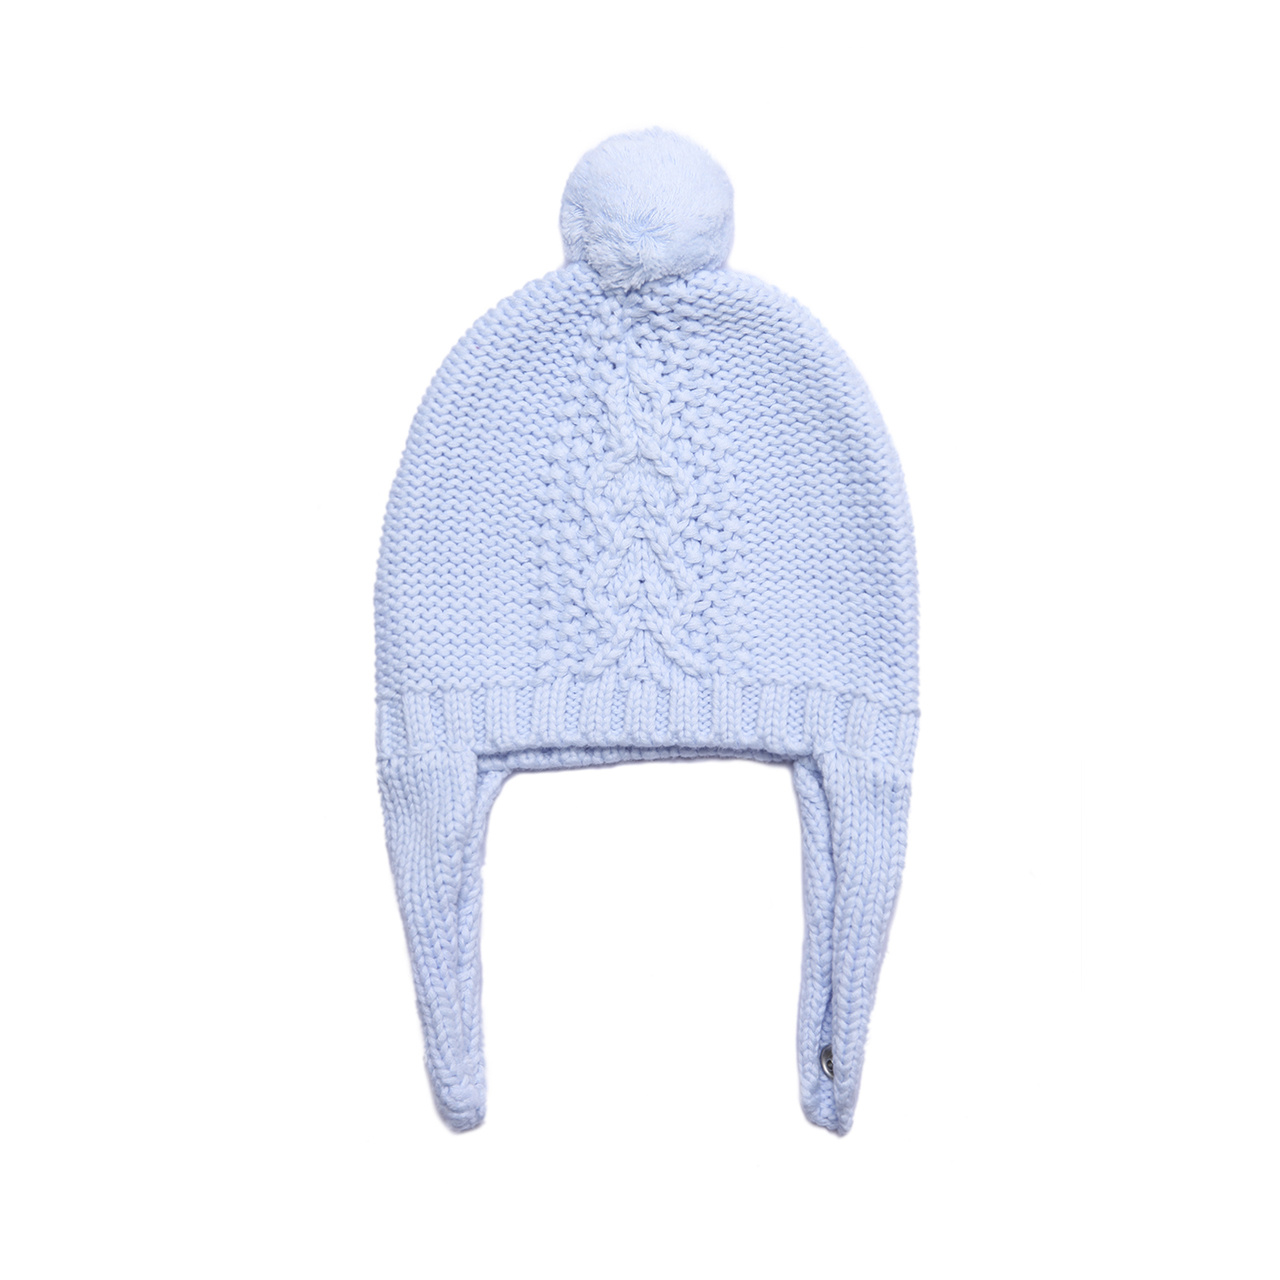 Angel Dear Cable Knit Pilot Hat - Pale Blue